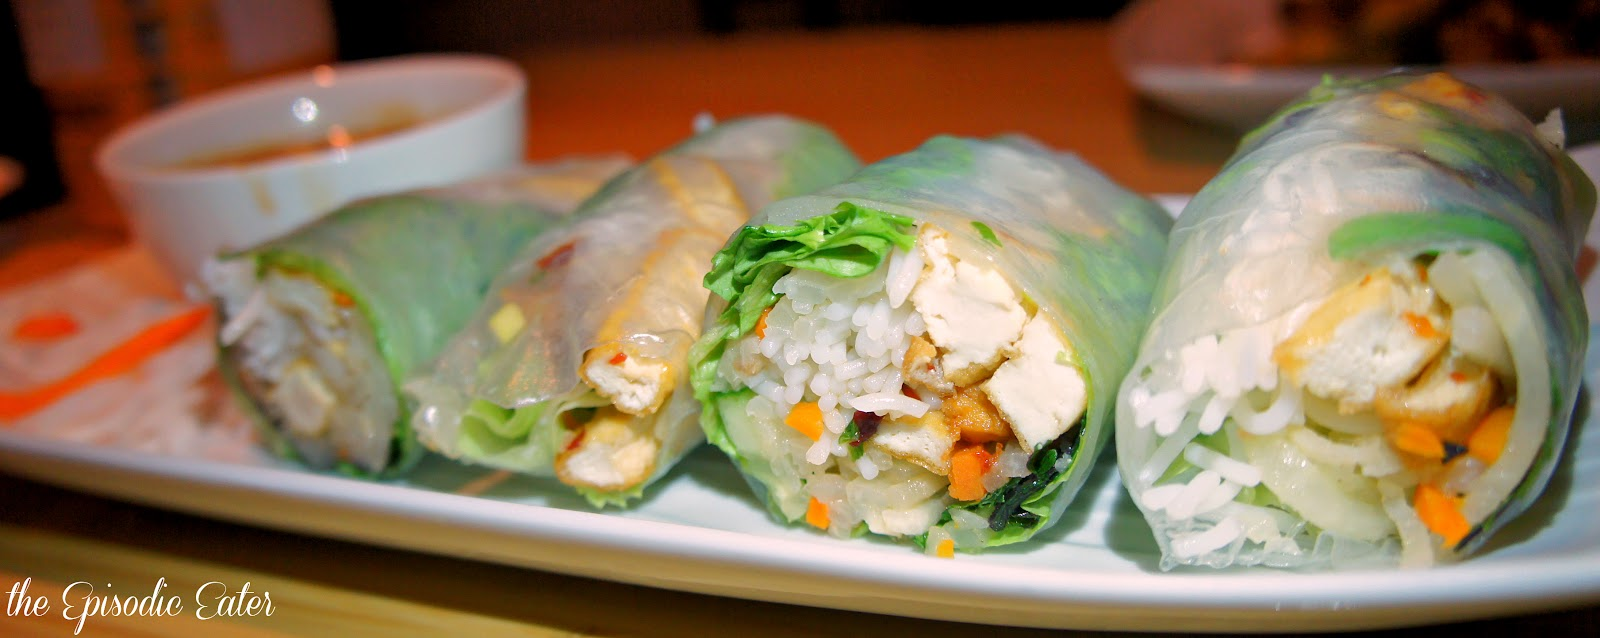 Benley: A Vietnamese Kitchen (Long Beach, CA) on The Episodic Eater